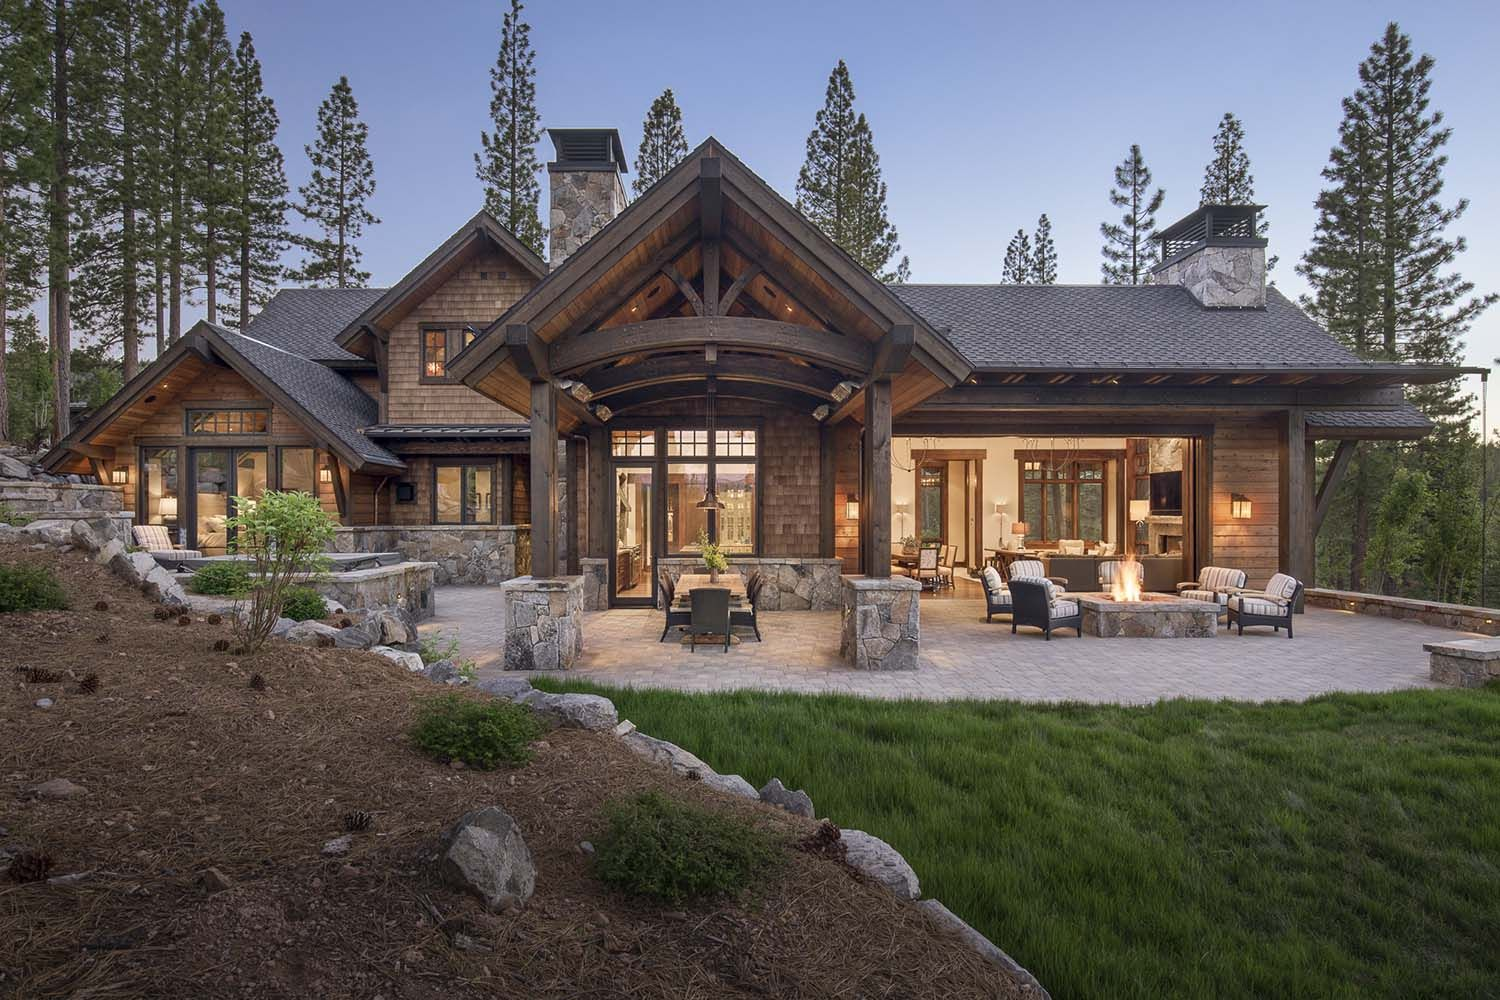 High Quality Gorgeous Rustic Mountain Retreat With Stylish Interiors In Martis Camp